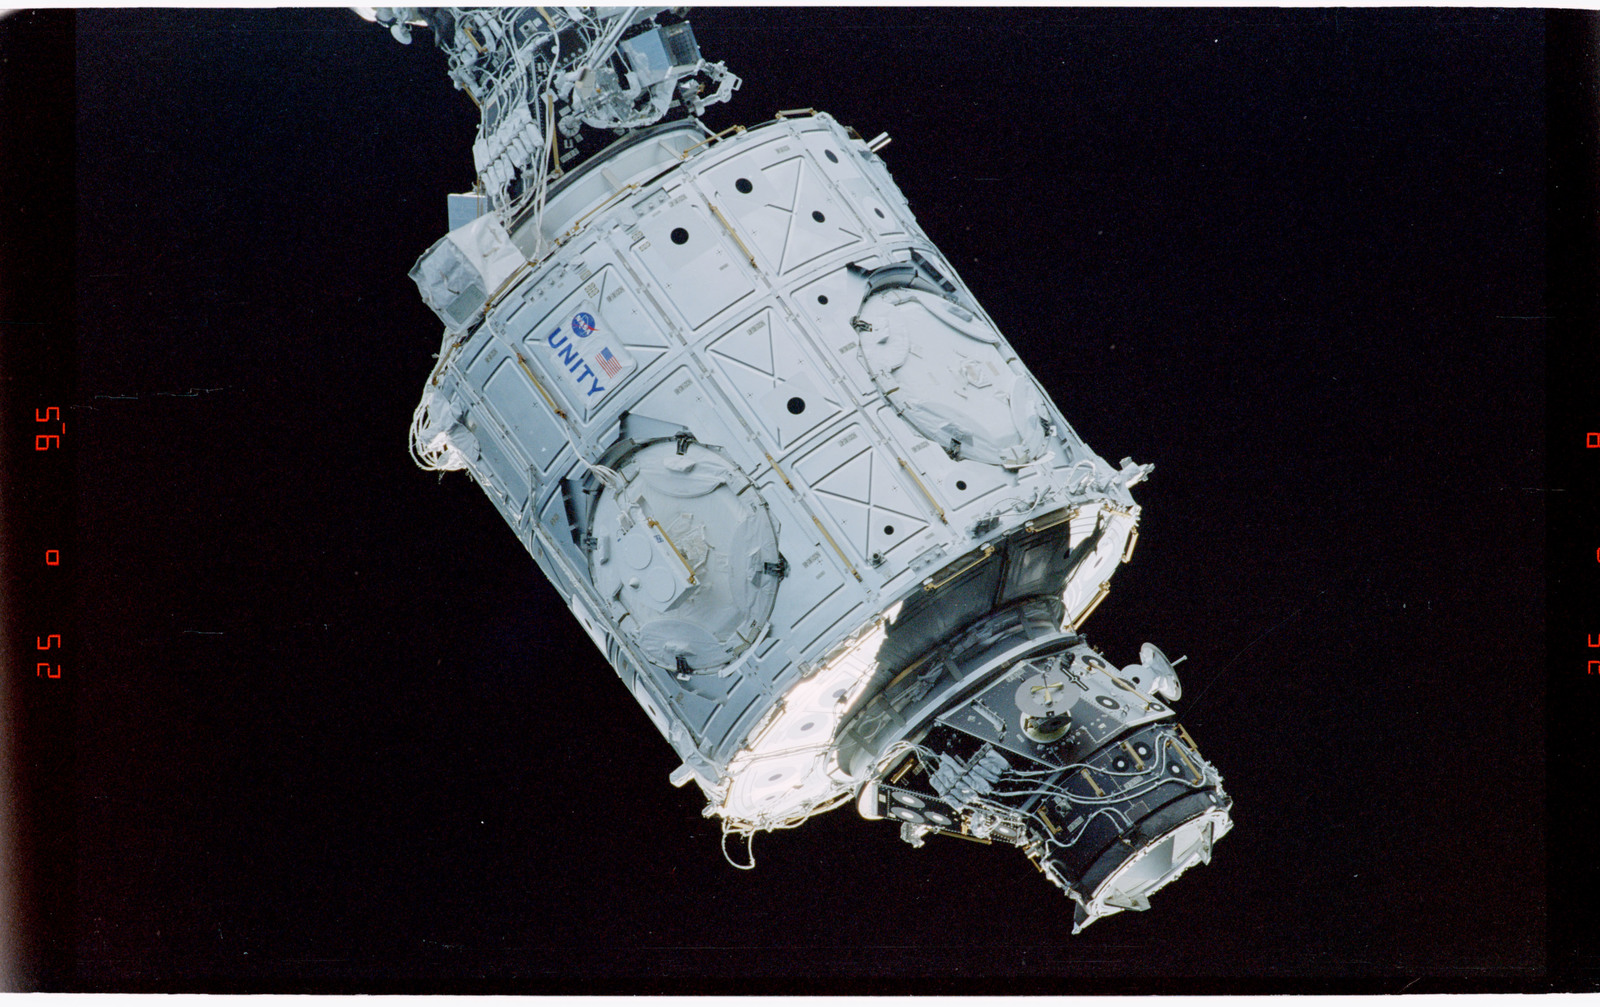 STS088-369-028 - STS-088 - View of the free-flying ISS stack taken during fly-around by STS-115